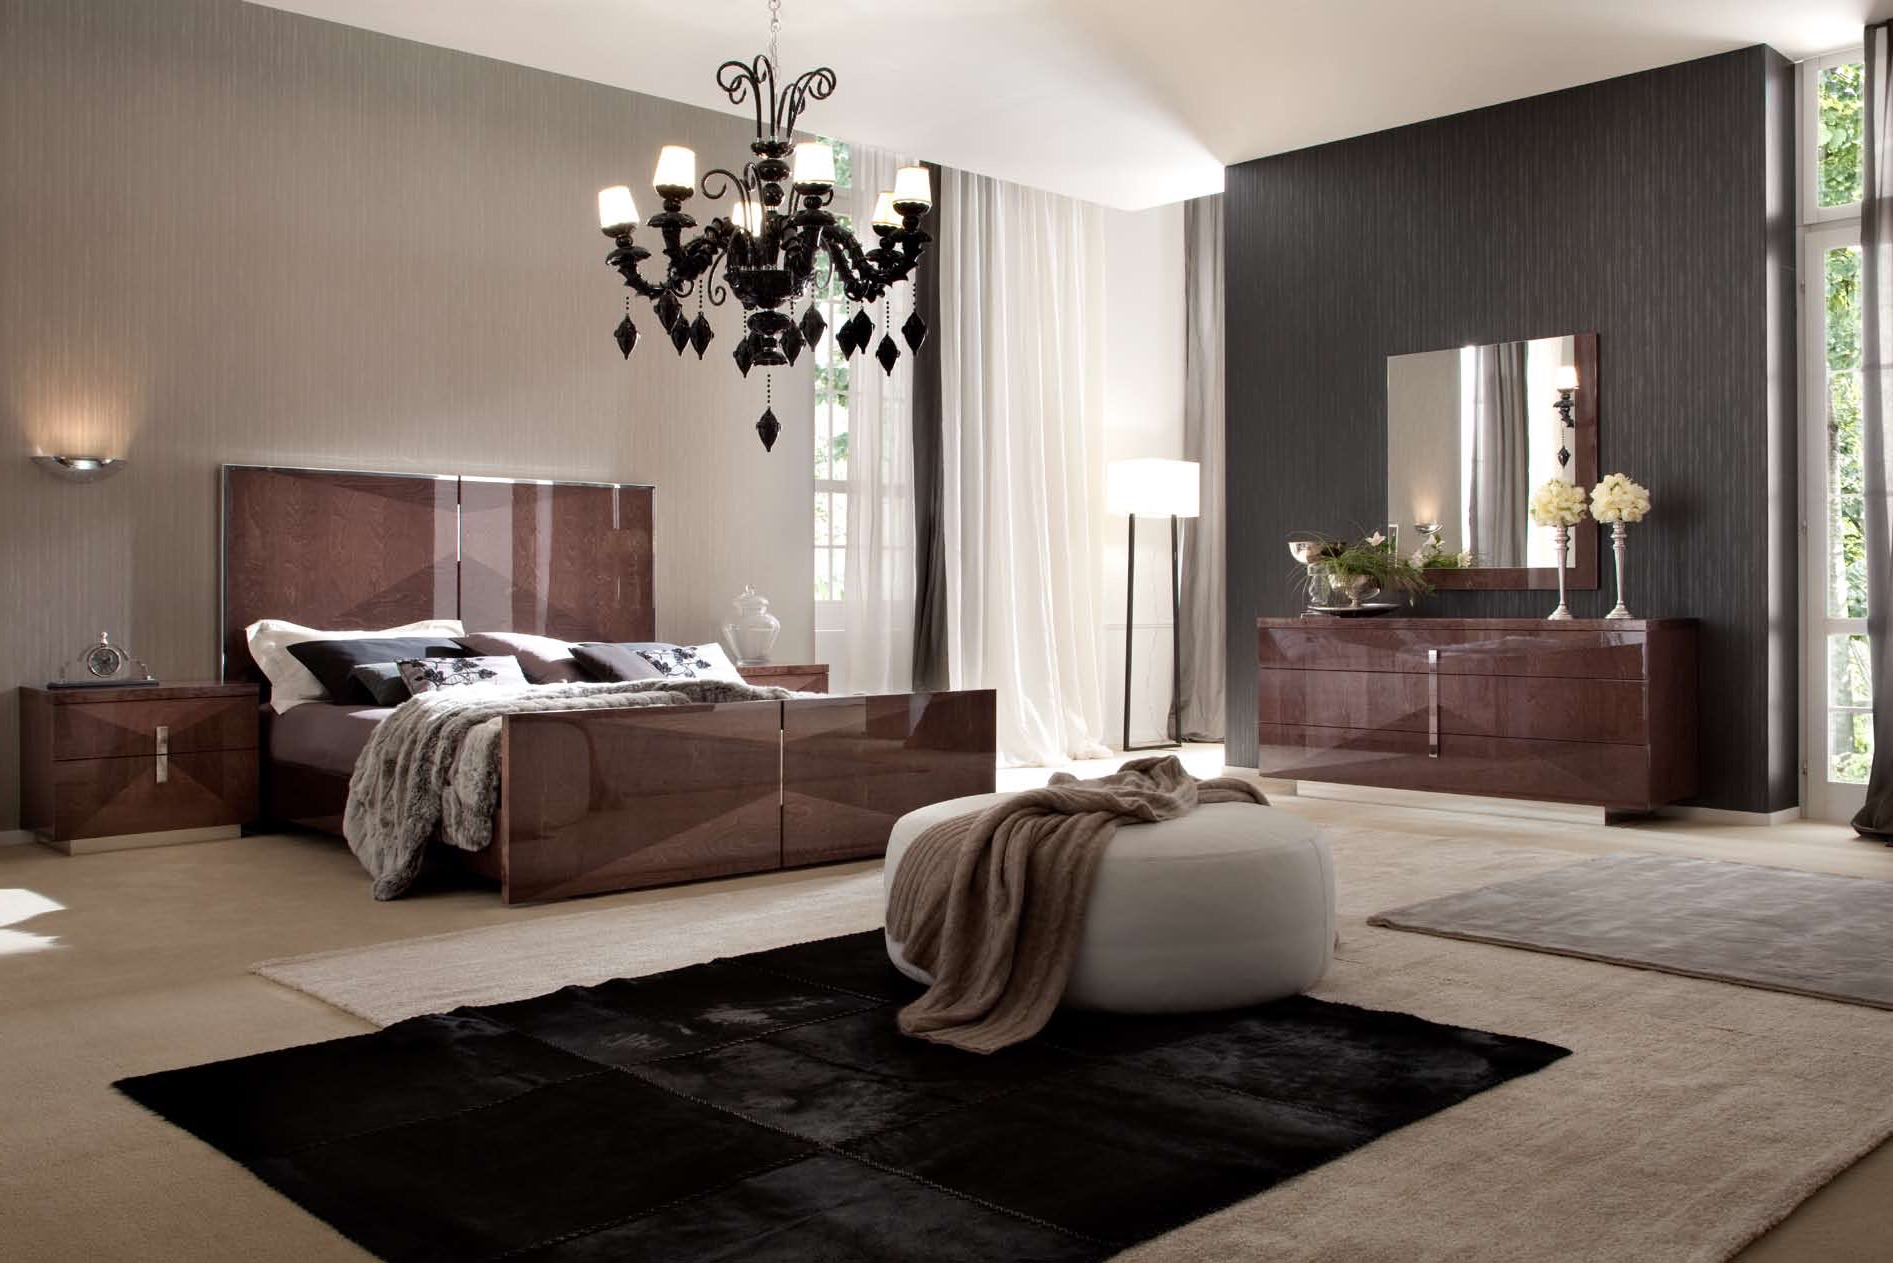 10 black chandelier decor ideas custom home design. Black Bedroom Furniture Sets. Home Design Ideas